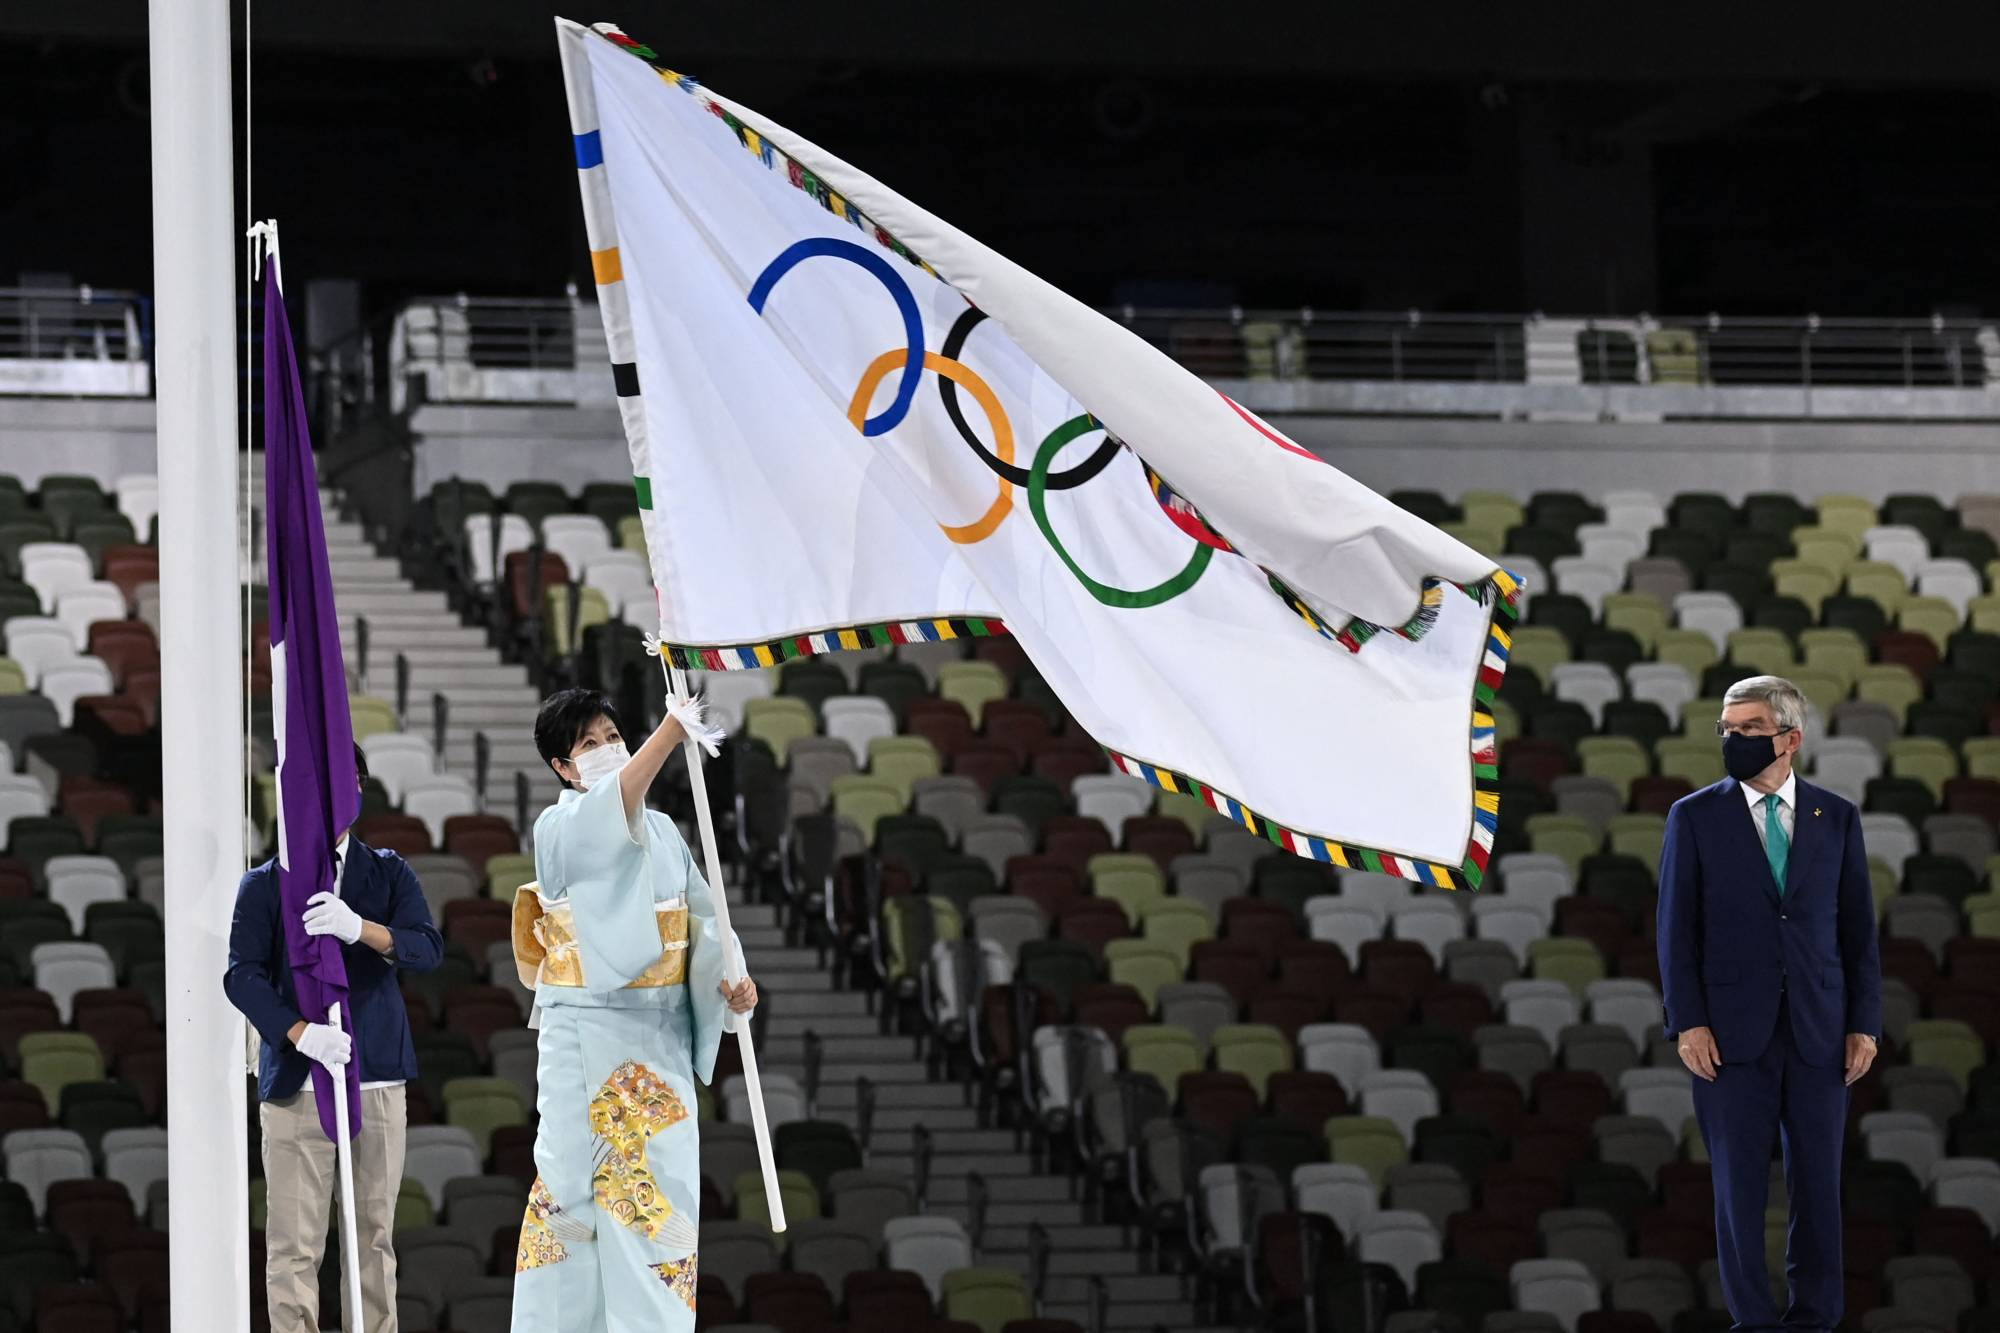 Tokyo's governor Yuriko Koike hold the Olympic flag during the closing ceremony of the Tokyo 2020 Olympic Games | AFP-JIJI